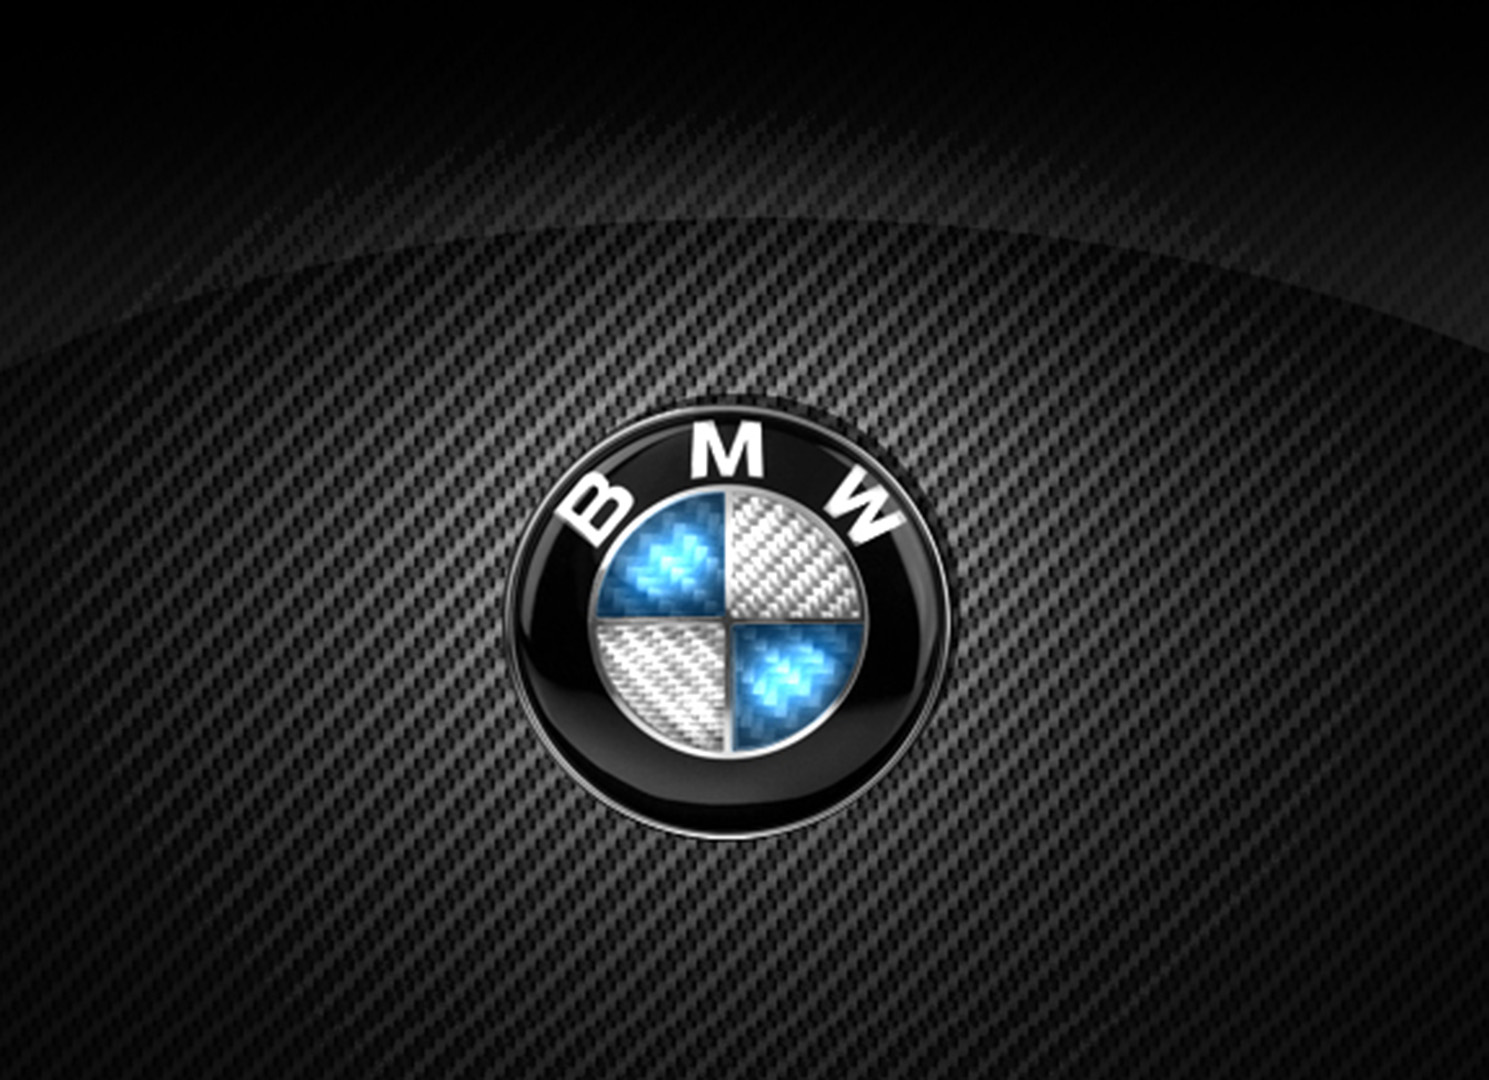 BMW Logo HD Wallpaper - WallpaperSafari